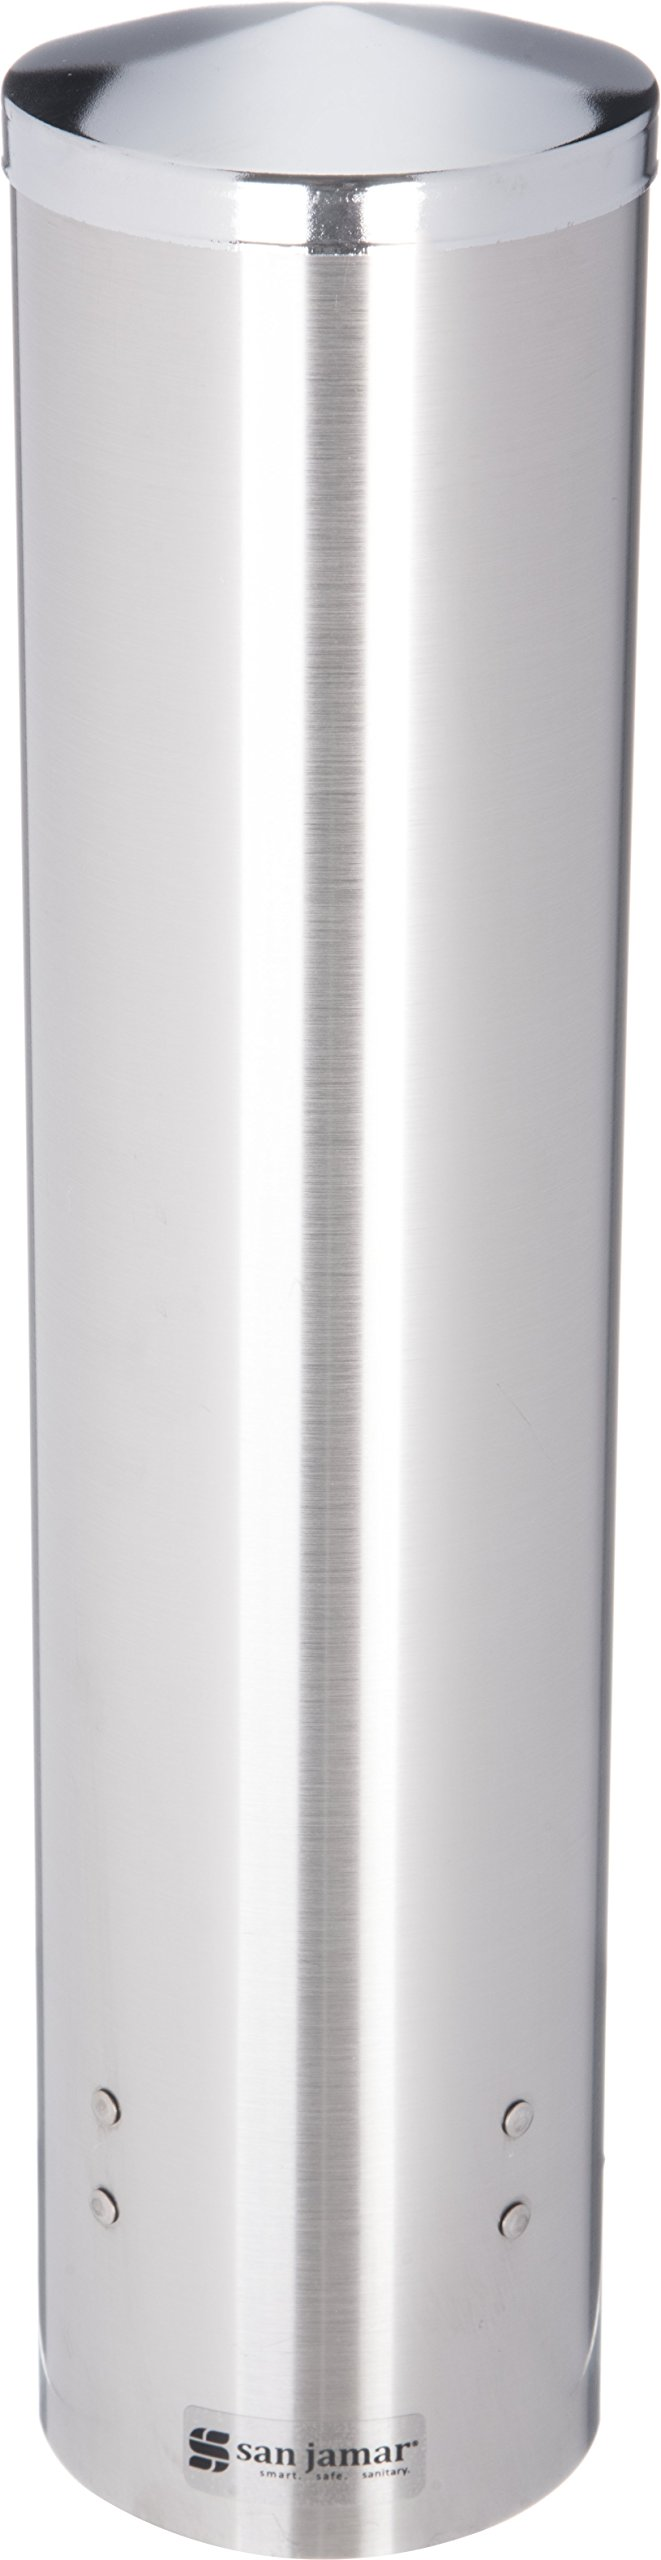 San Jamar C3250 Stainless Steel Large Pull Type Water Cup Dispenser, Fits 4-1/2oz to 7oz Cone and 6oz to 12oz Flat Cup Size, 2-3/4'' to 3-3/8'' Rim, 16'' Tube Length